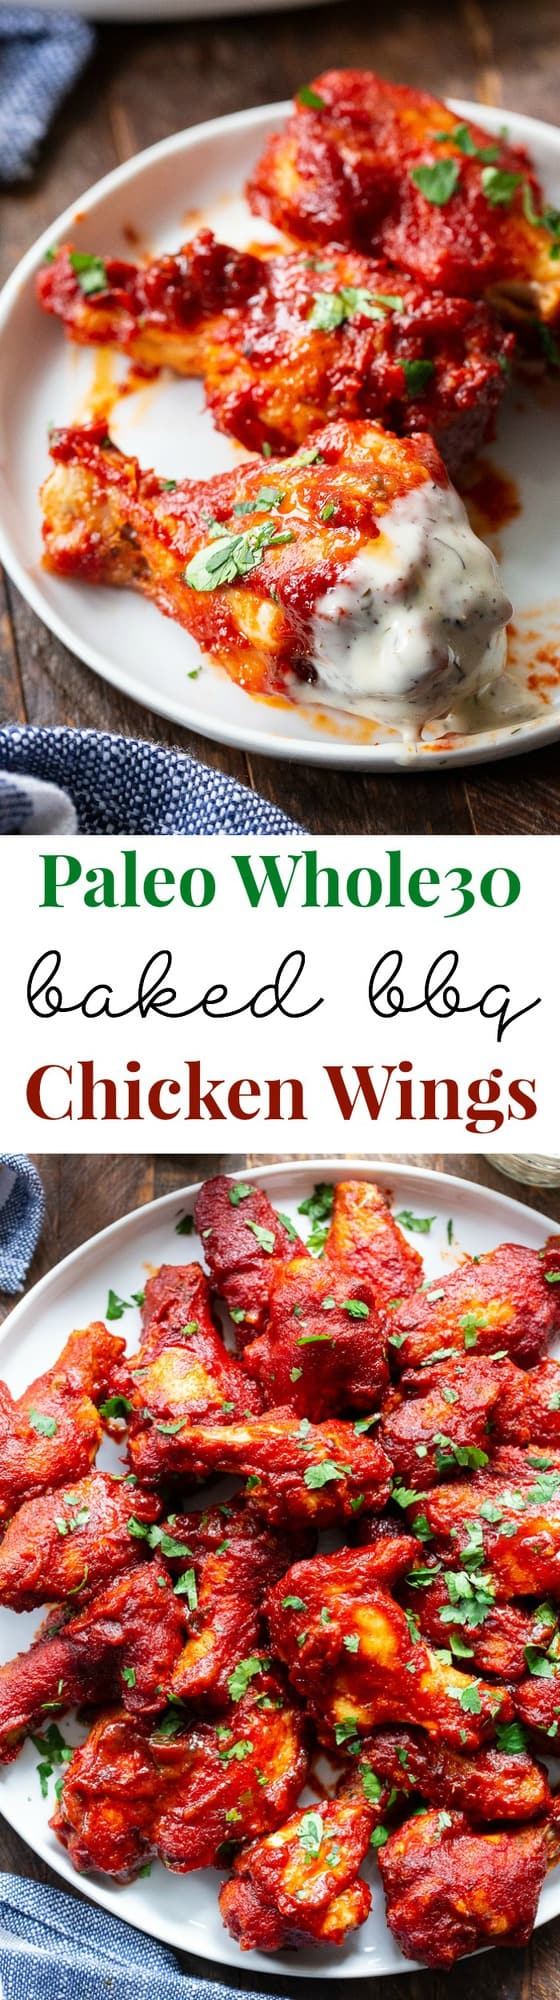 These sweet and smoky BBQ chicken wings are made Whole30 compliant with an easy homemade BBQ sauce. They're baked to crispy perfection and brushed with lots of sauce for a super tasty appetizer or main course that you'll be constantly craving!